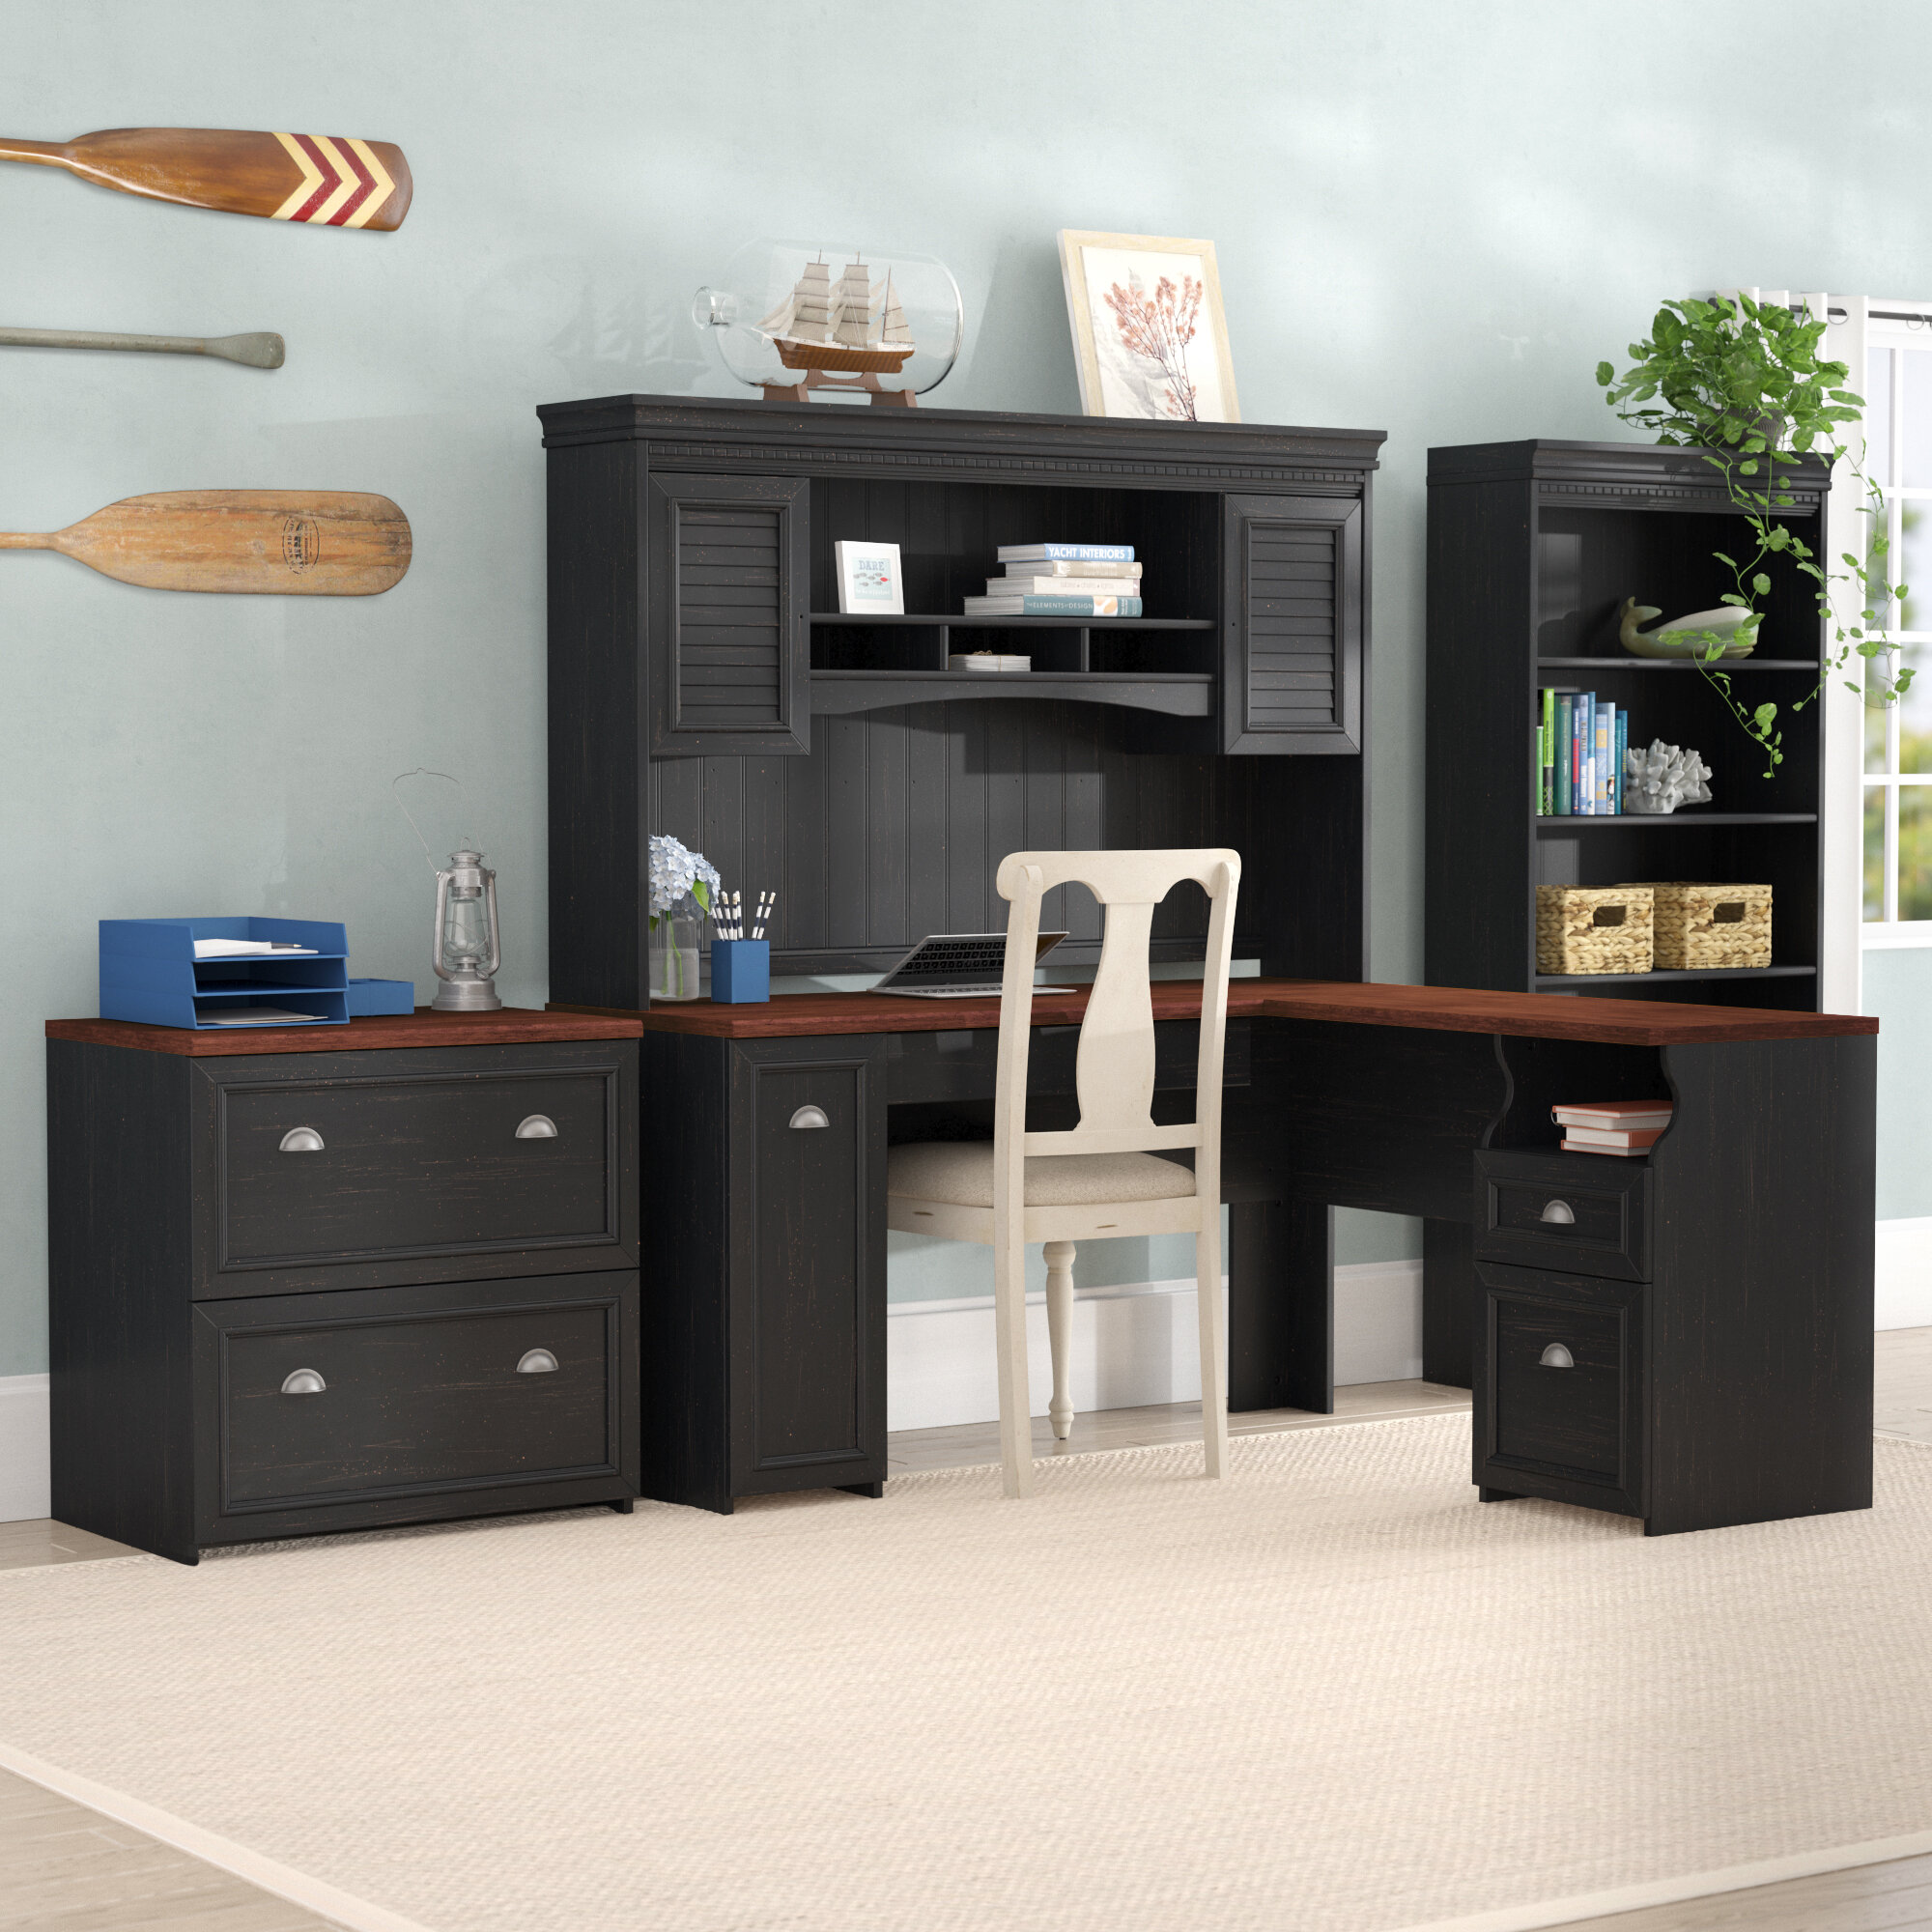 l desk office. beachcrest home oakridge 4 piece l-shaped desk office suite \u0026 reviews | wayfair l e